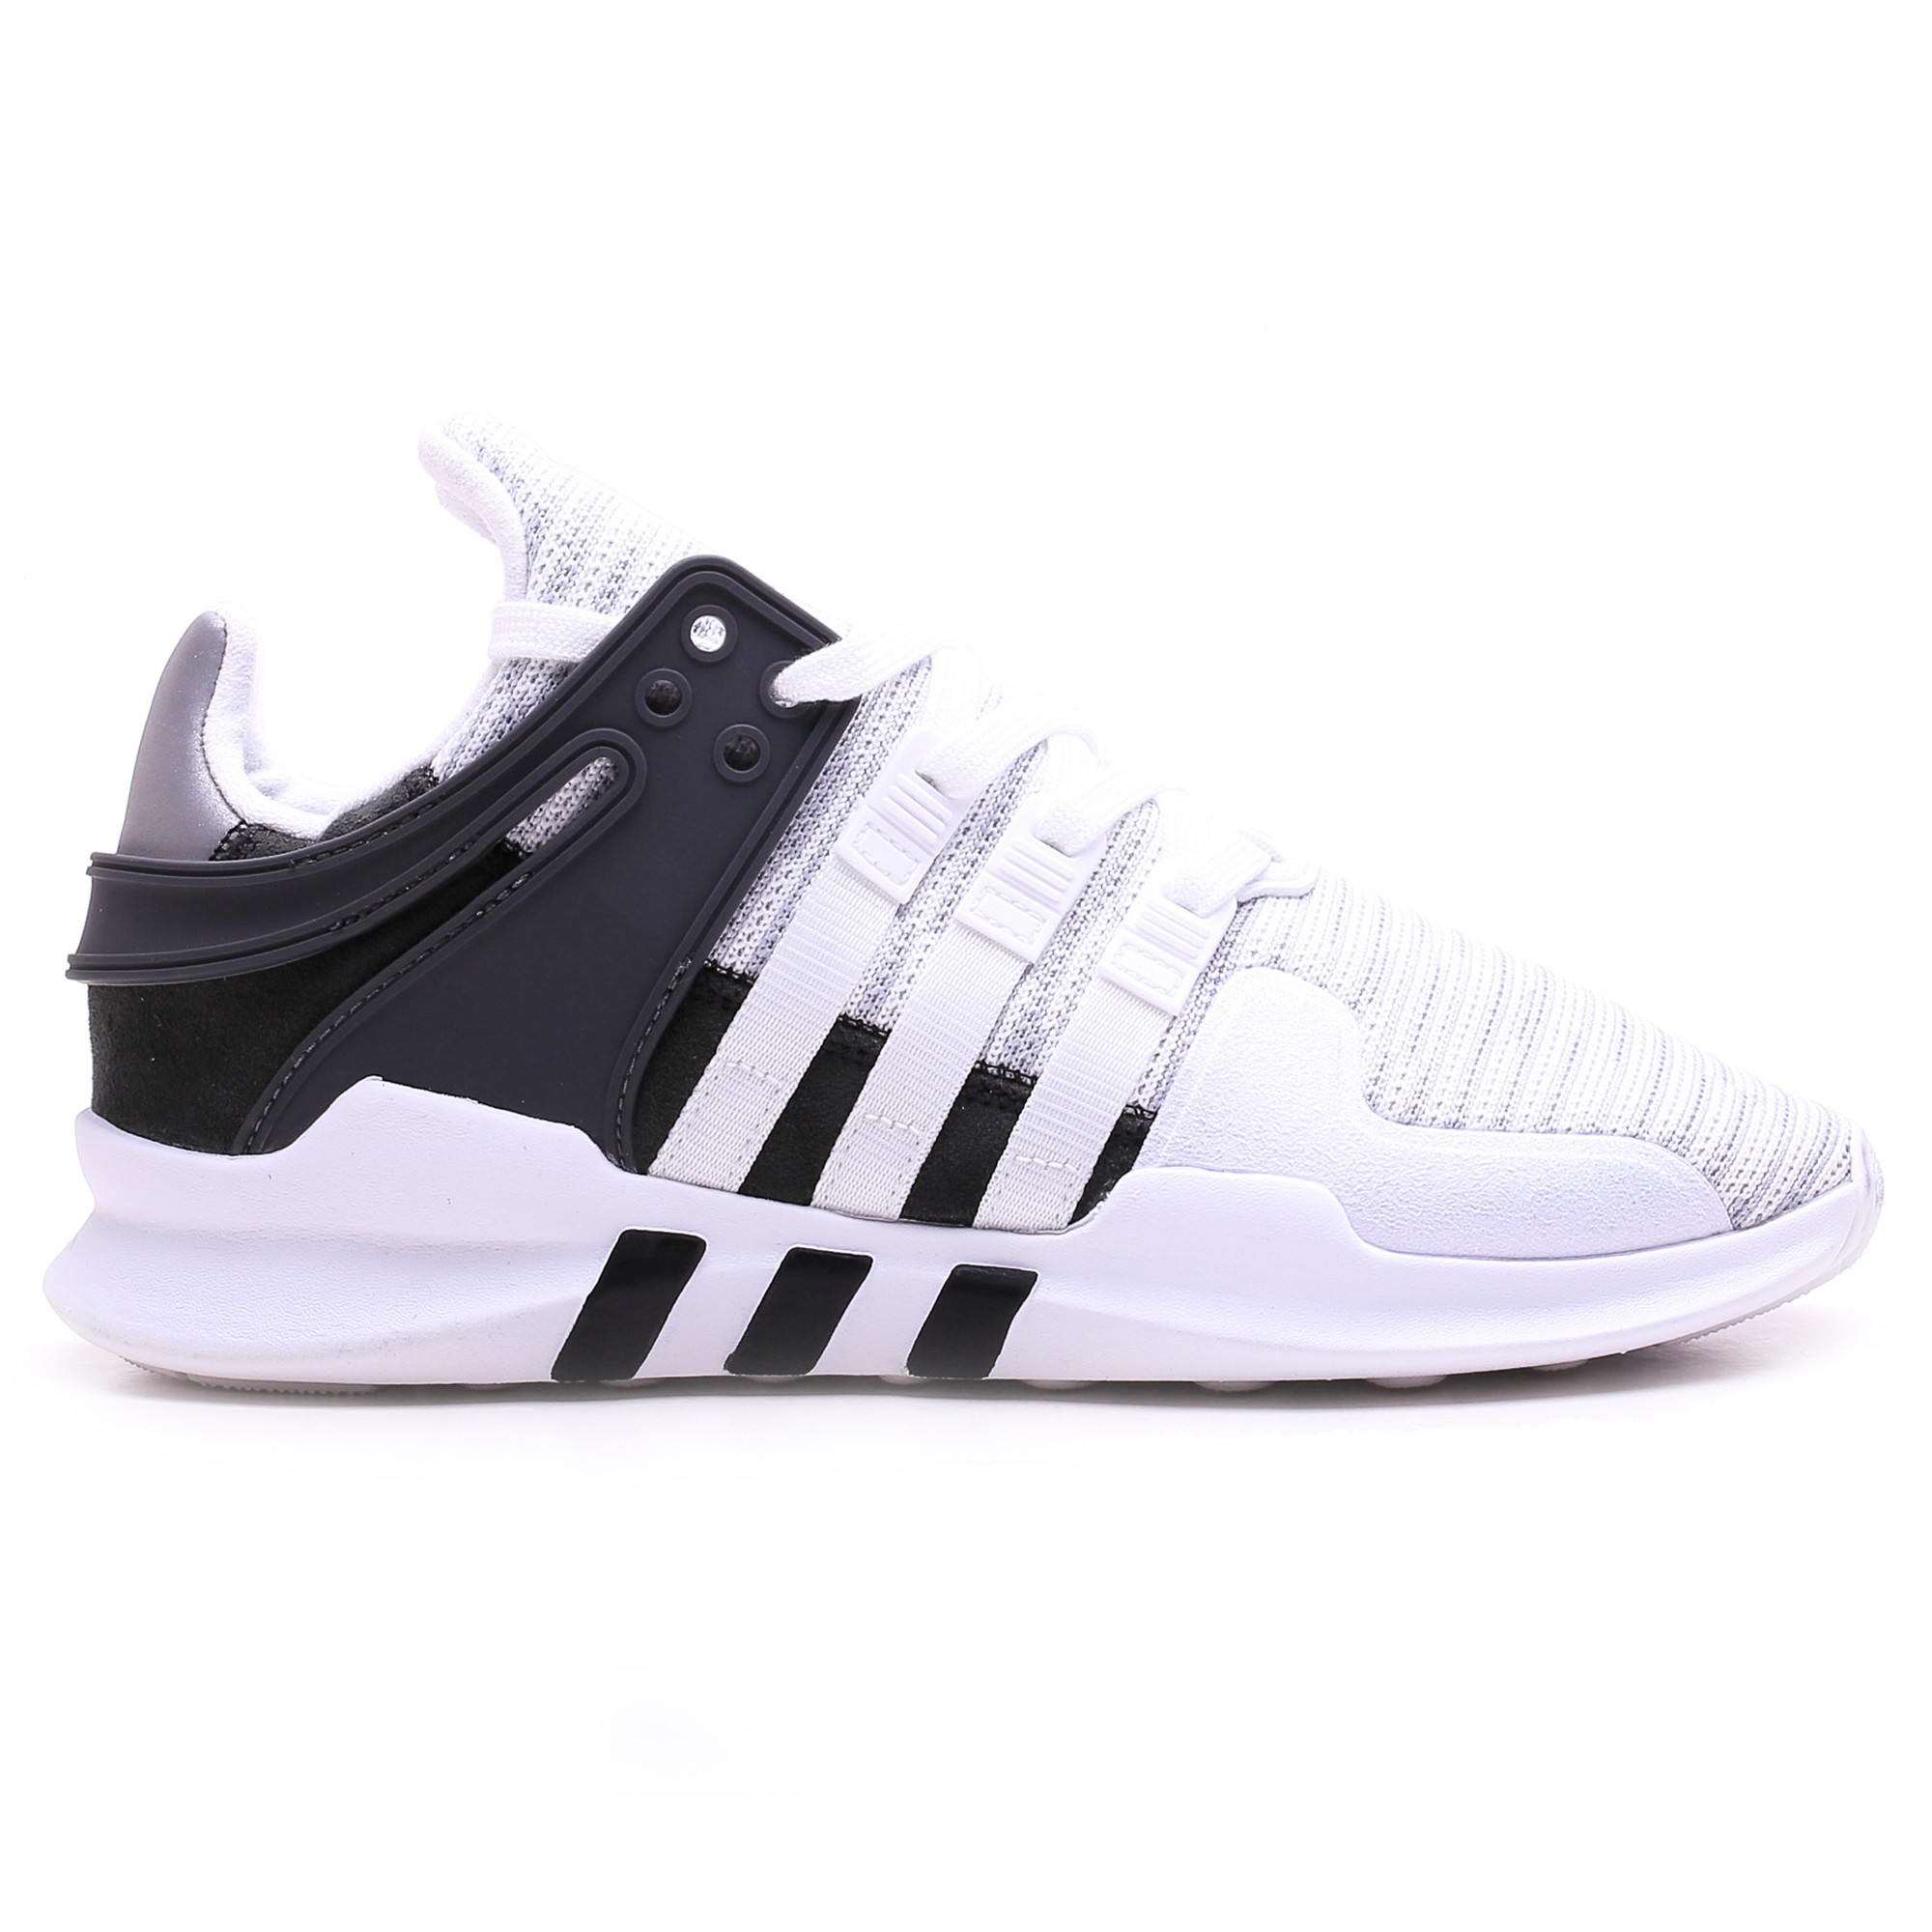 adidas eqt support 93/17 core black/core black